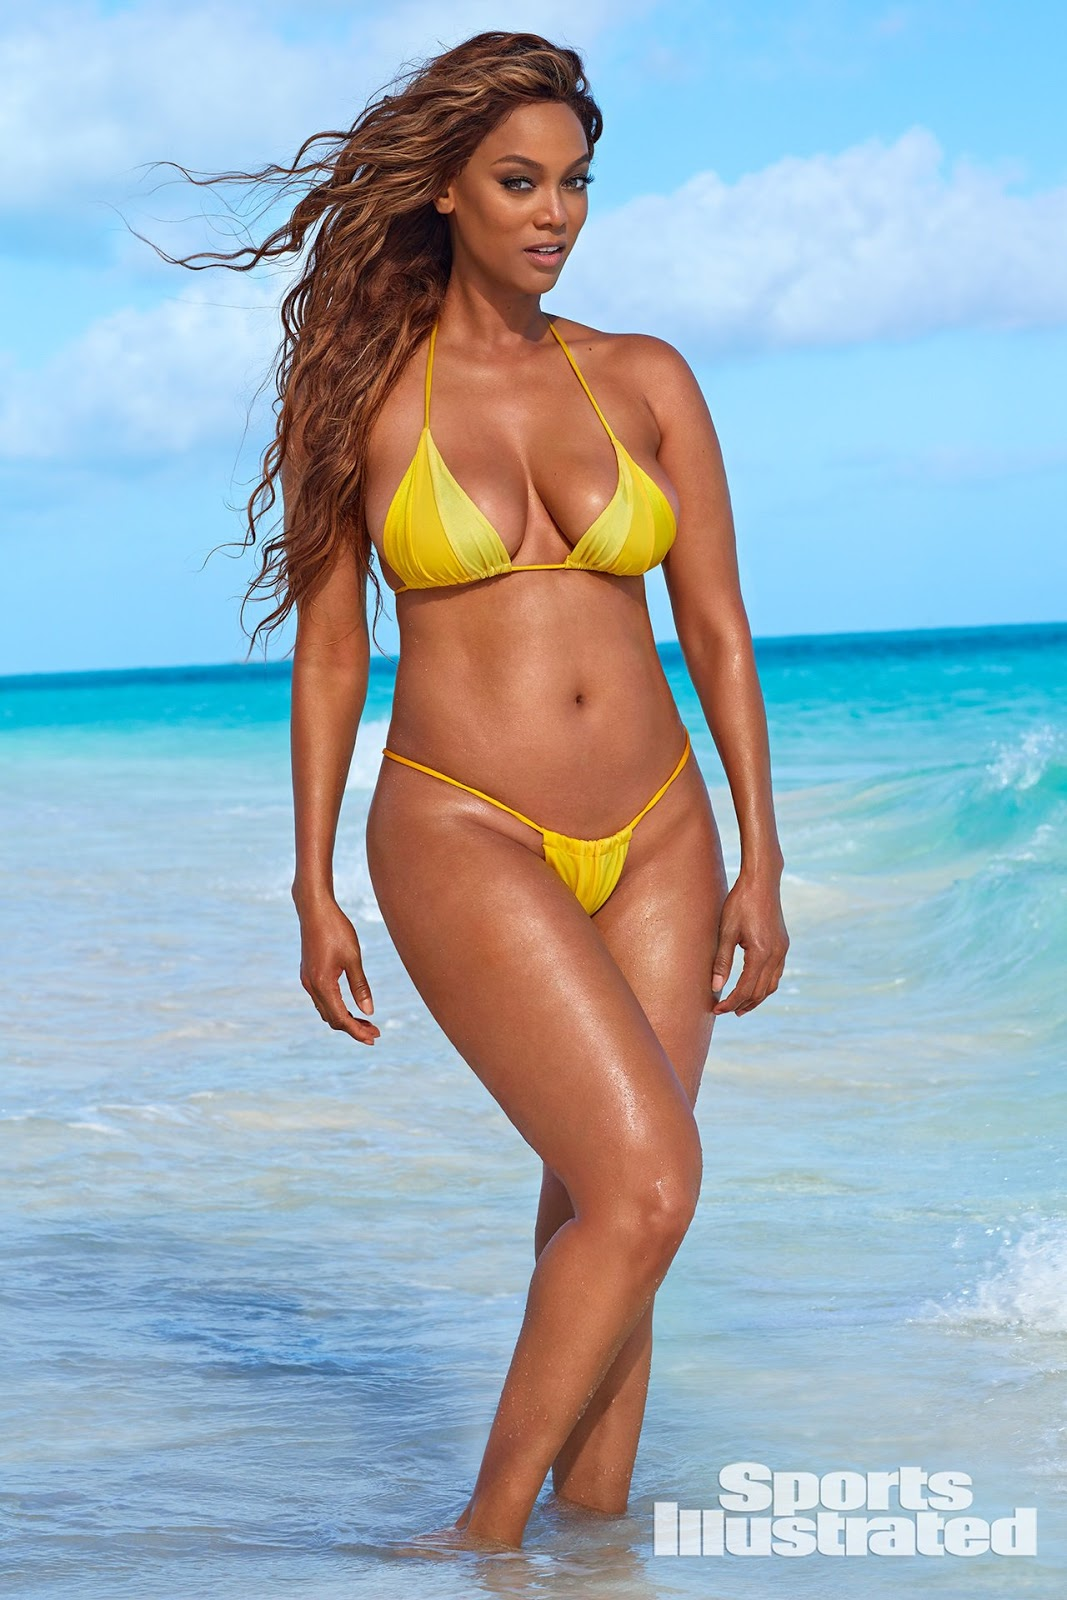 30b3db312d6d4 Tyra Banks was photographed by Laretta Houston in Great Exuma, Bahamas.  Swimsuit by Andi Bagus.